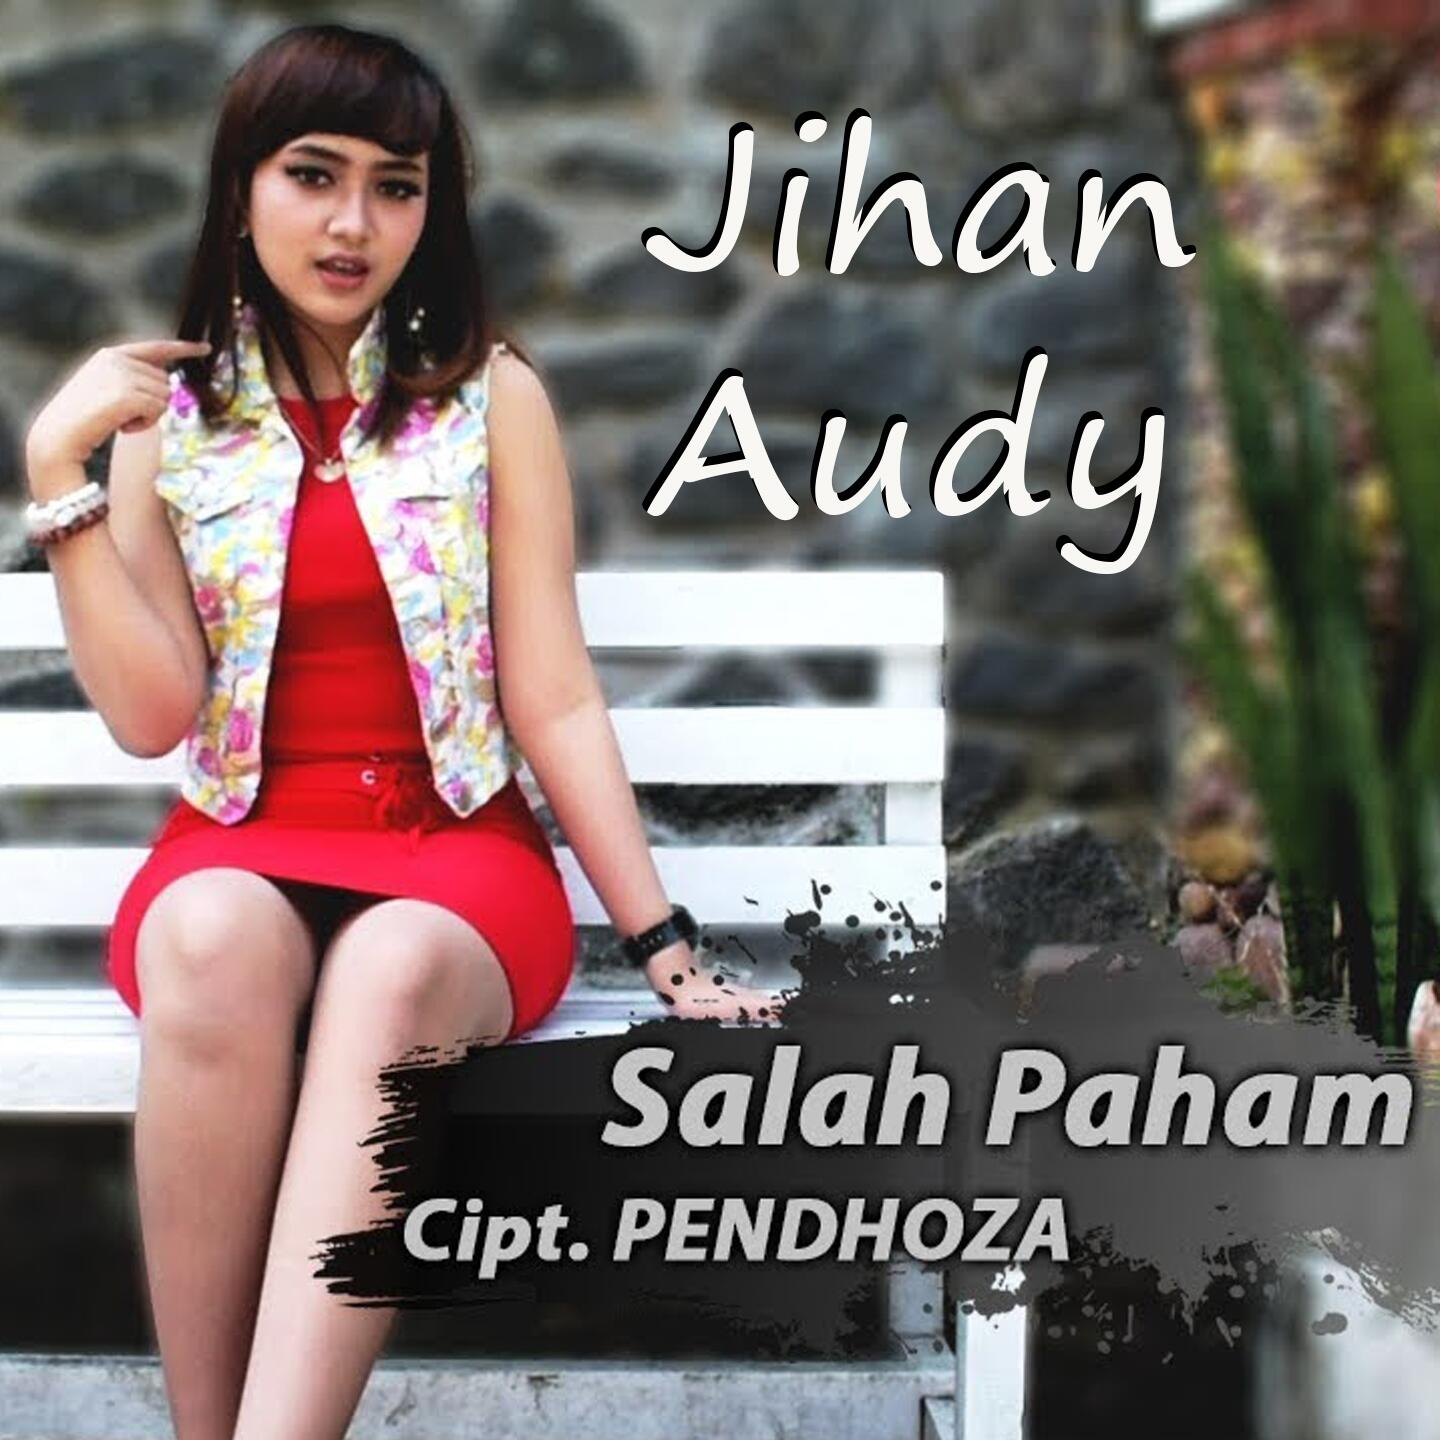 Stream Free Songs By Jihan Audy Similar Artists Iheartradio